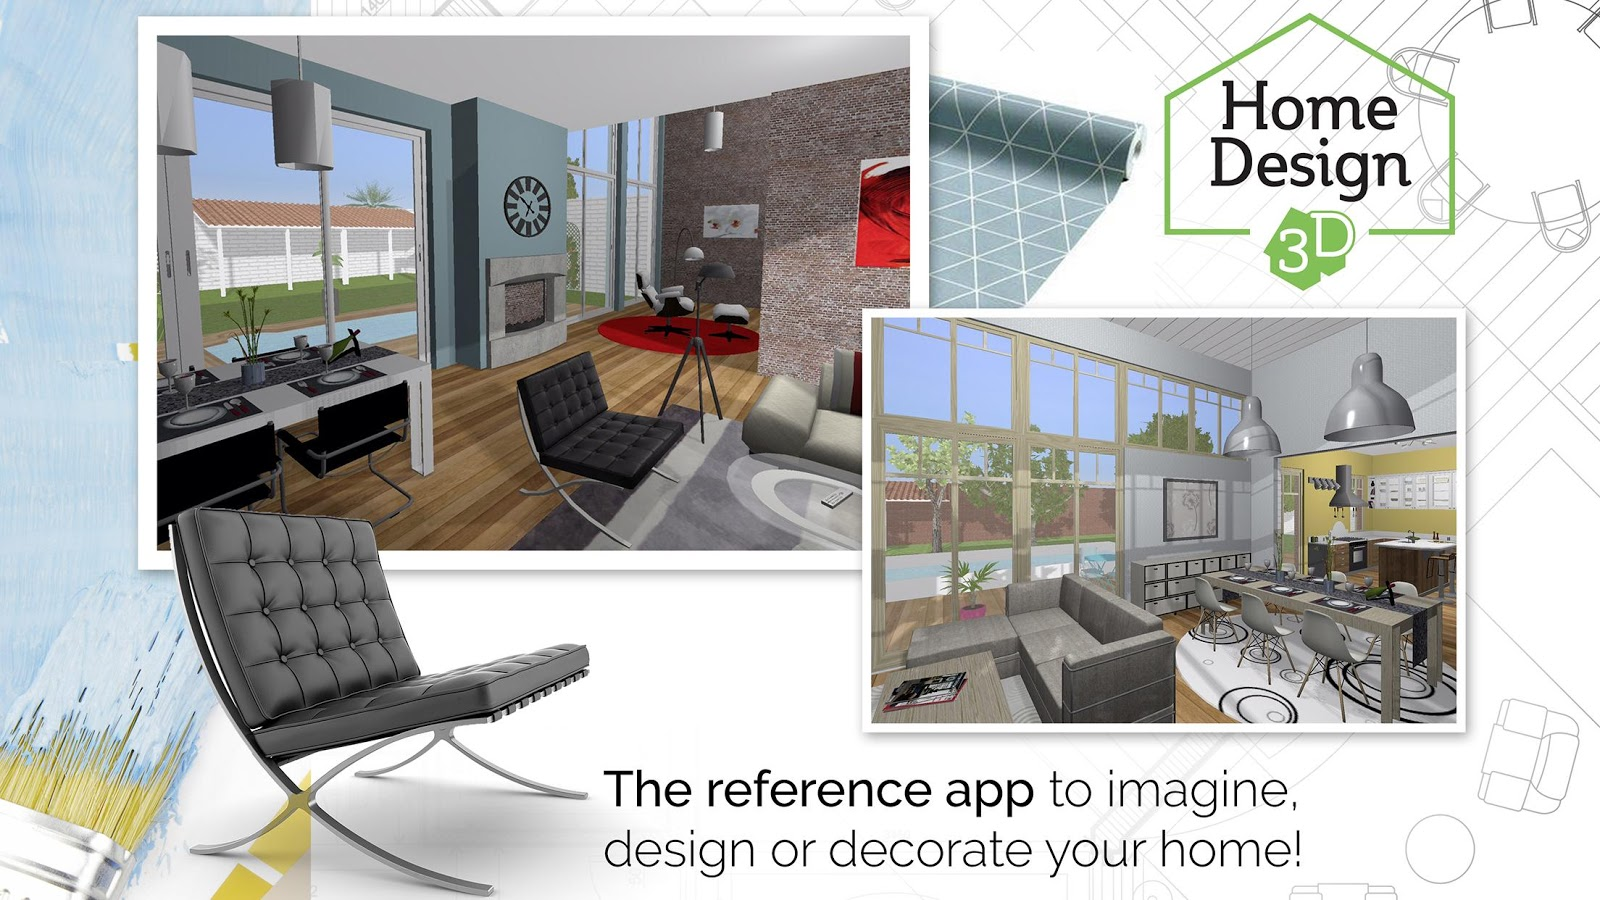 Home design 3d freemium android apps on google play for Home design 3d 5 0 crack